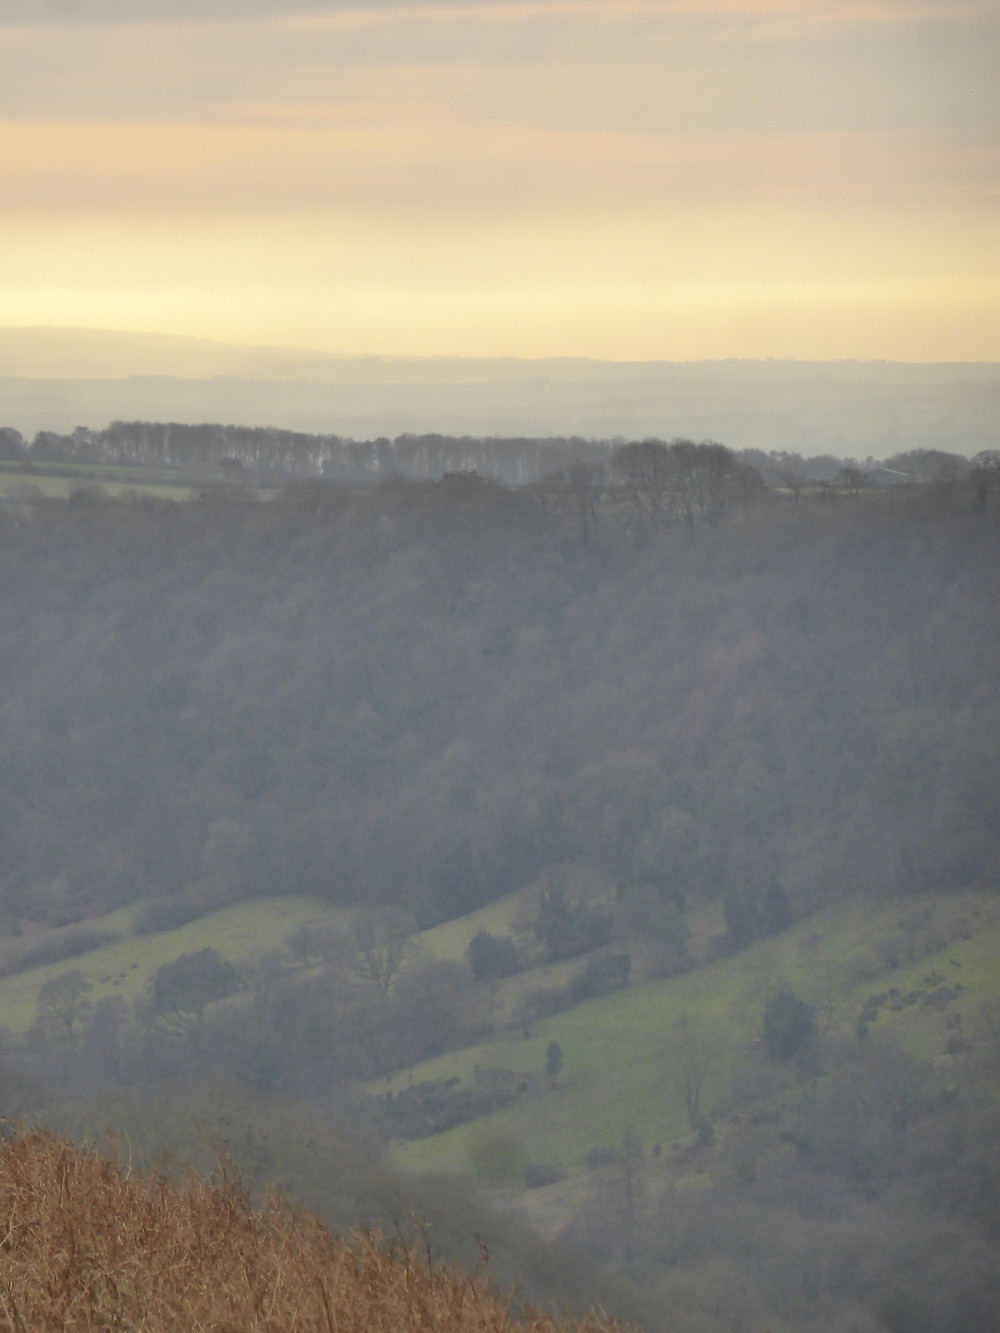 Layers and trees in the distance, Hole of Horcum, North York Moors National Park